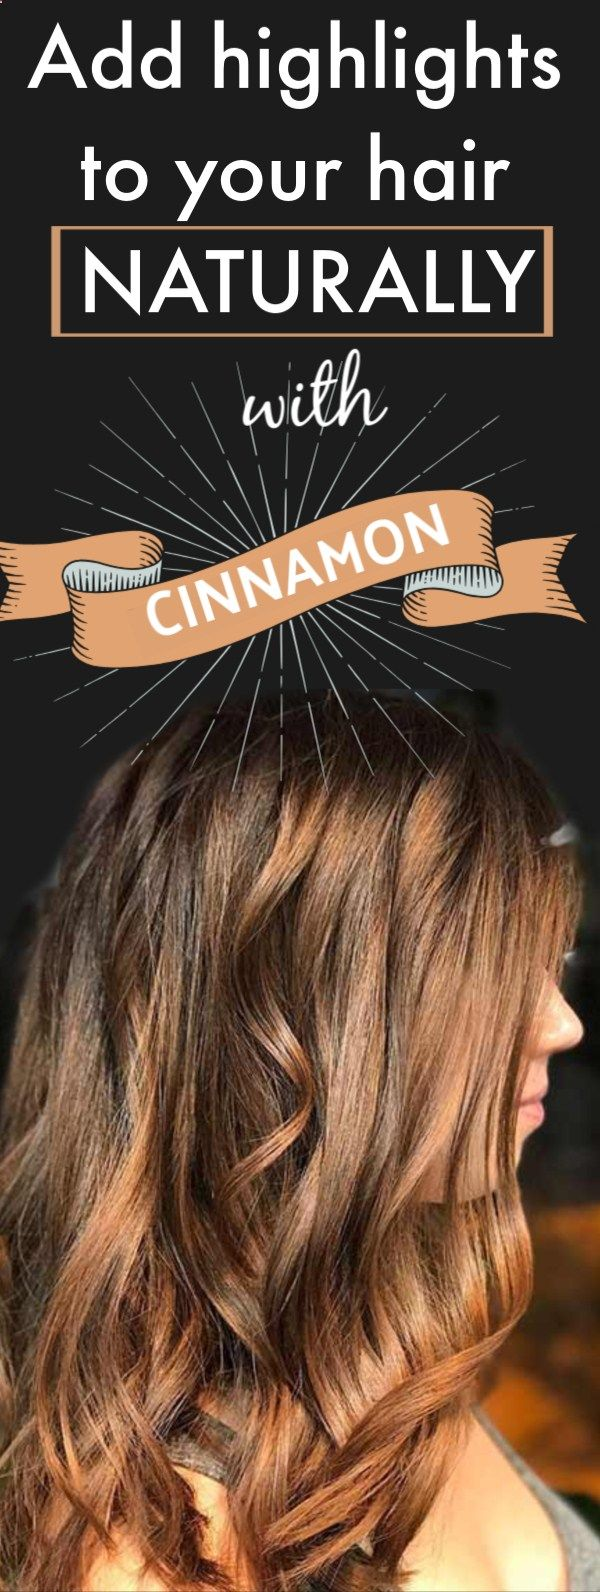 USE CINNAMON TO LIGHTEN HAIR AND ADD HIGHLIGHTS NATURALLY haircare diyhair naturalremedies haircoloring cinn is part of Home beauty tips -